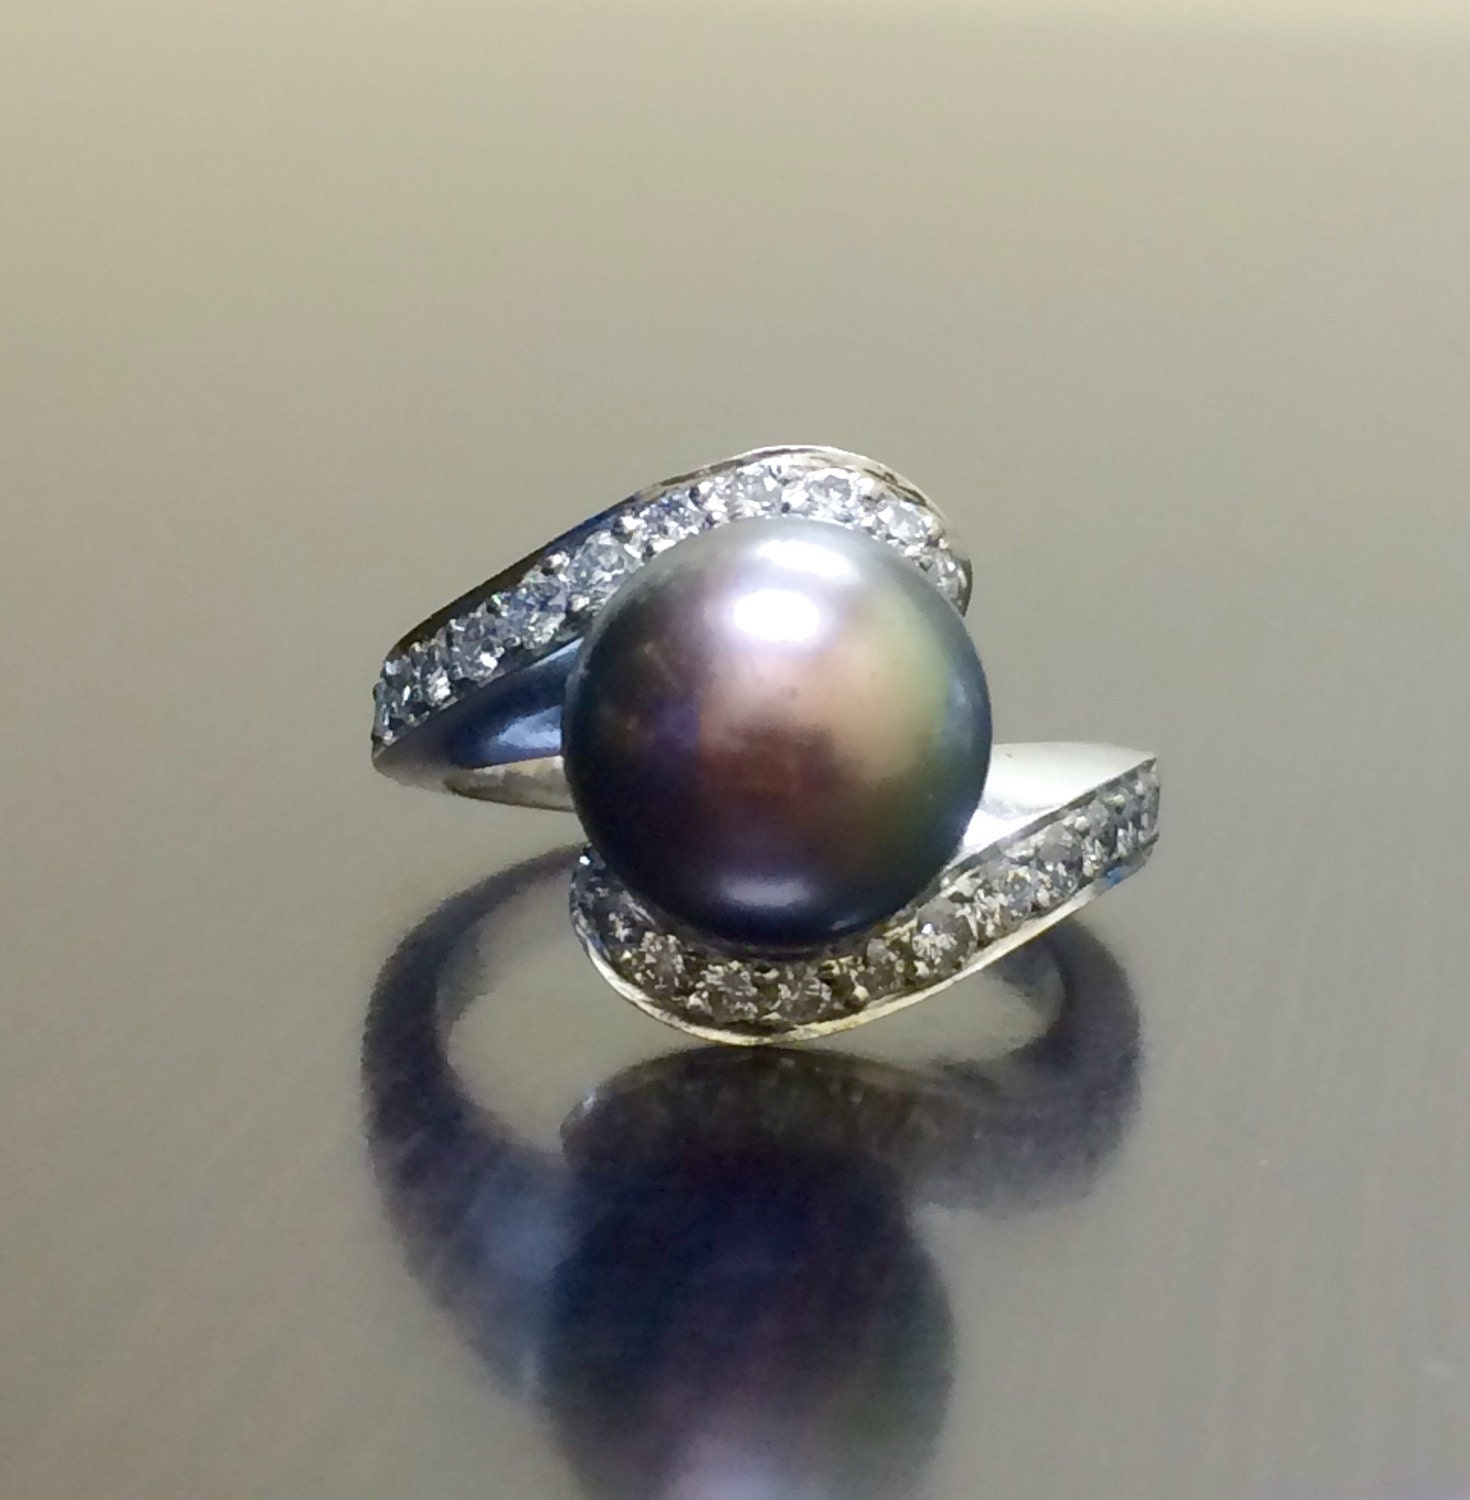 wedding antique rings pearl engagement diamond attractive ring pearls engagament